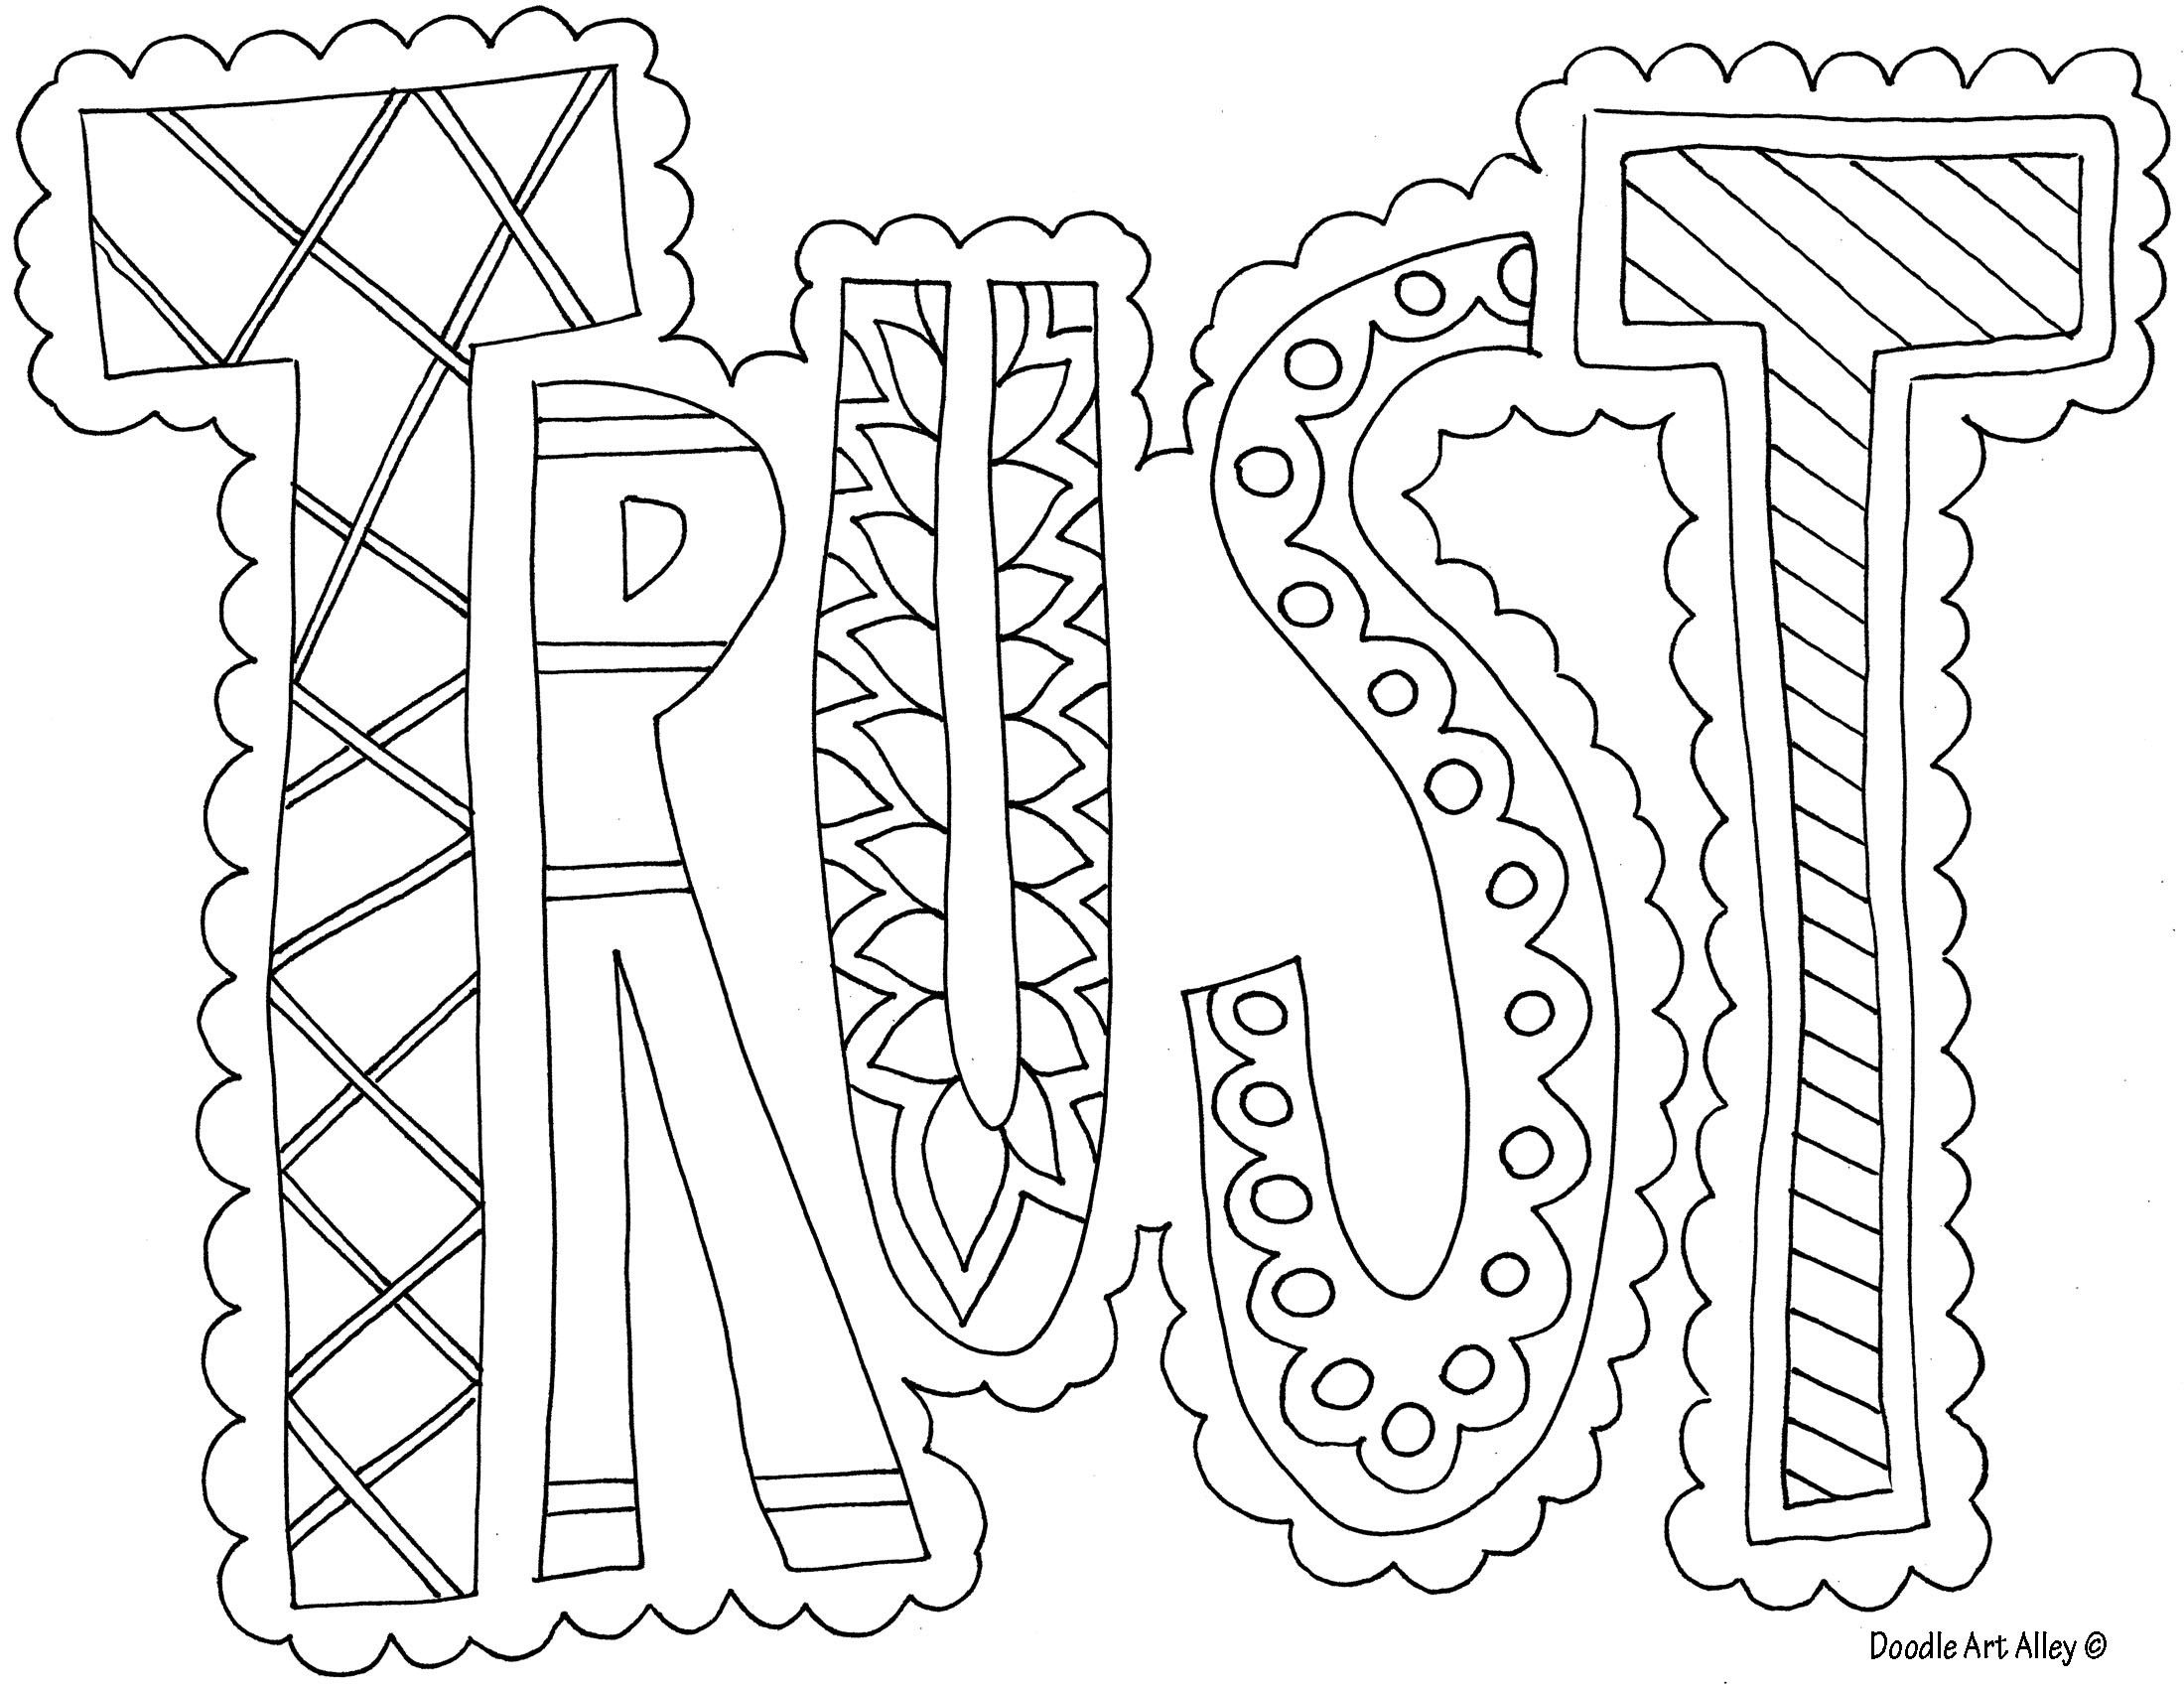 Trust Jpg Free Printable Coloring Pages Coloring Pages Printable Coloring Pages